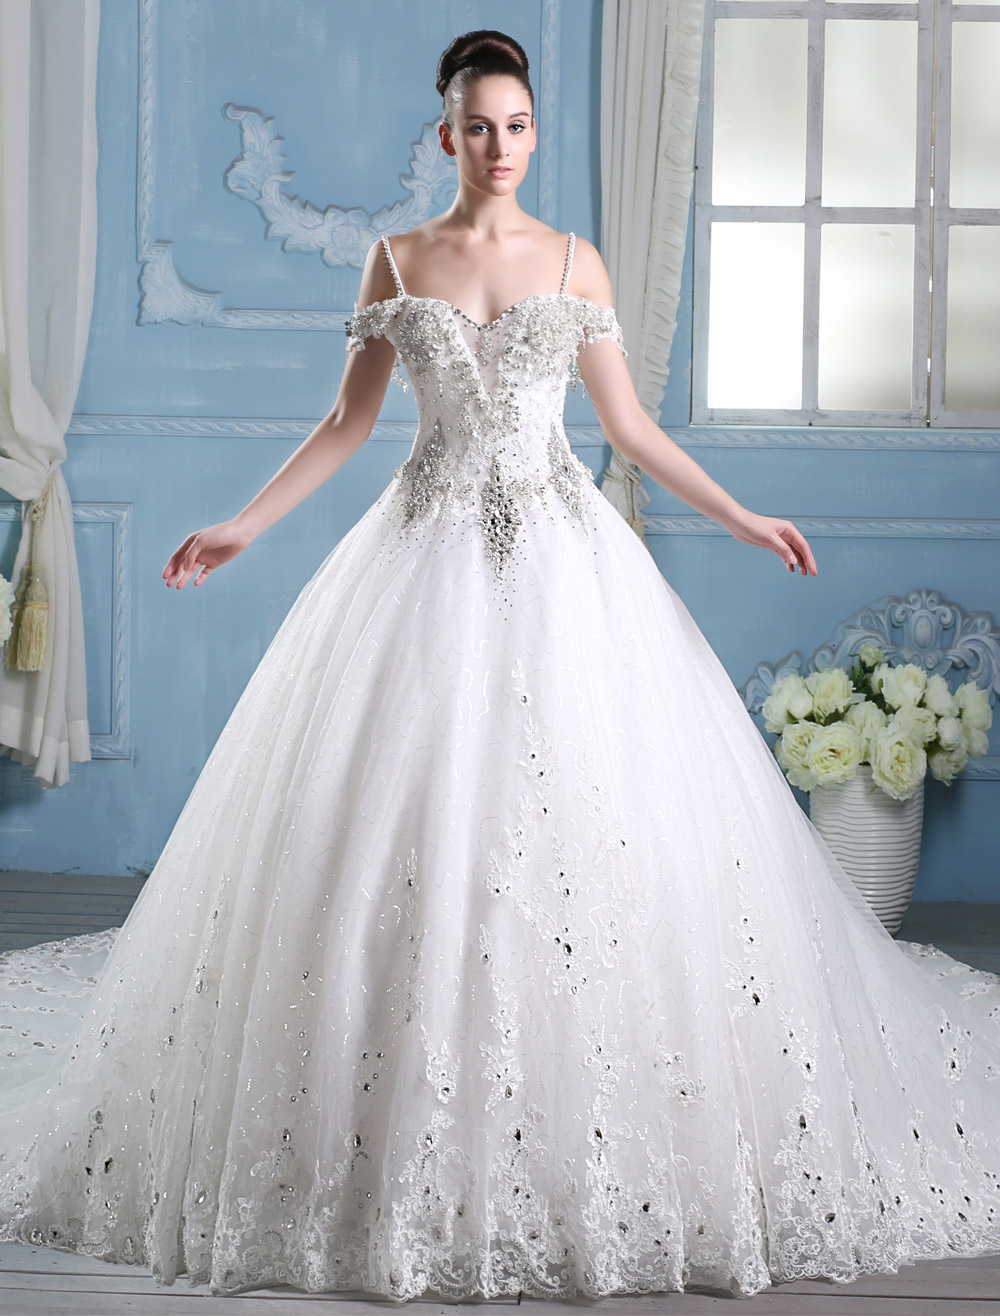 cab06121e2ed5 Wedding Dresses Ball Gown Bridal Dress Rhinestones Beaded Straps Ivory  Cathedral Train Luxury Wedding Gown